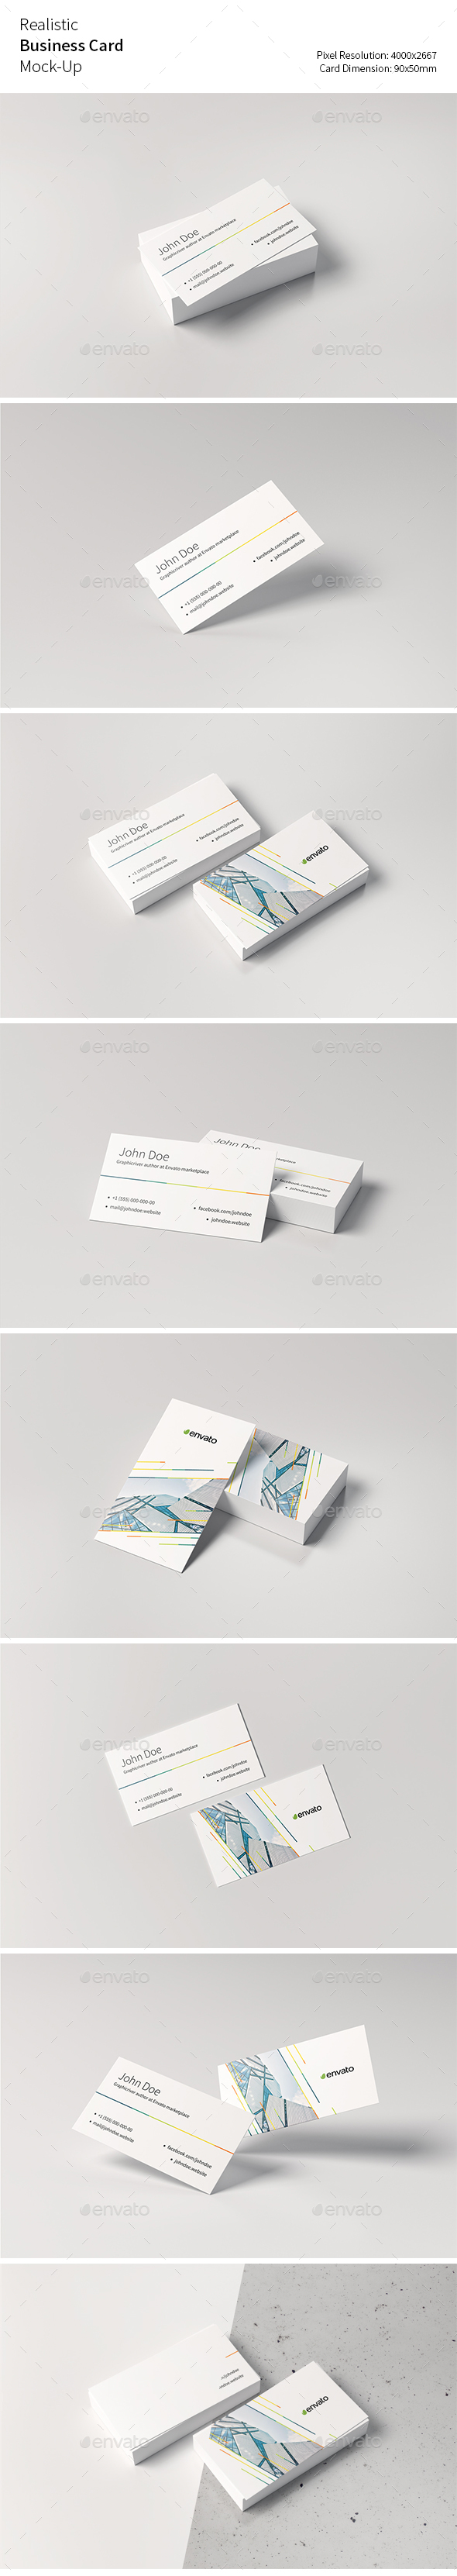 Realistic Business Card Mock Up by Jakiv